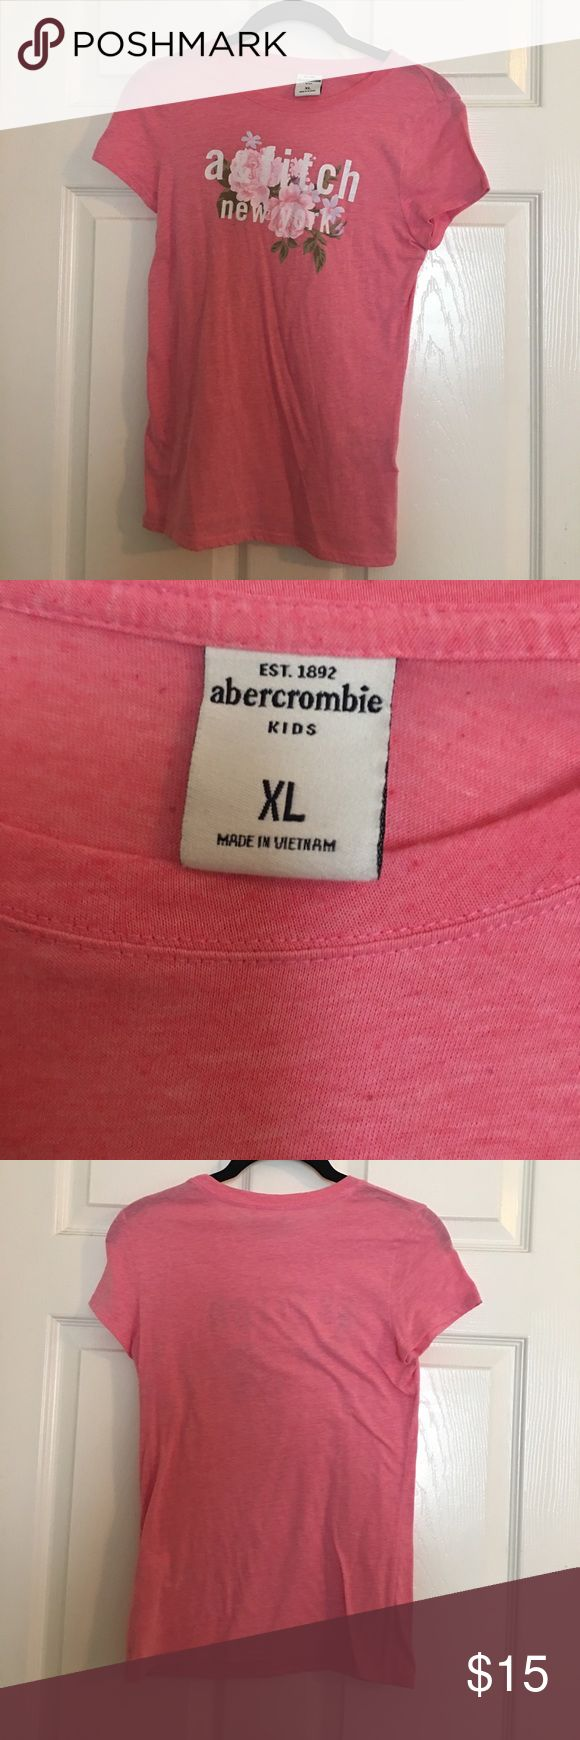 abercrombie and fitch pink t-shirt Super cute pink t-shirt with flowers. Abercombie Kids Shirts & Tops Tees - Short Sleeve